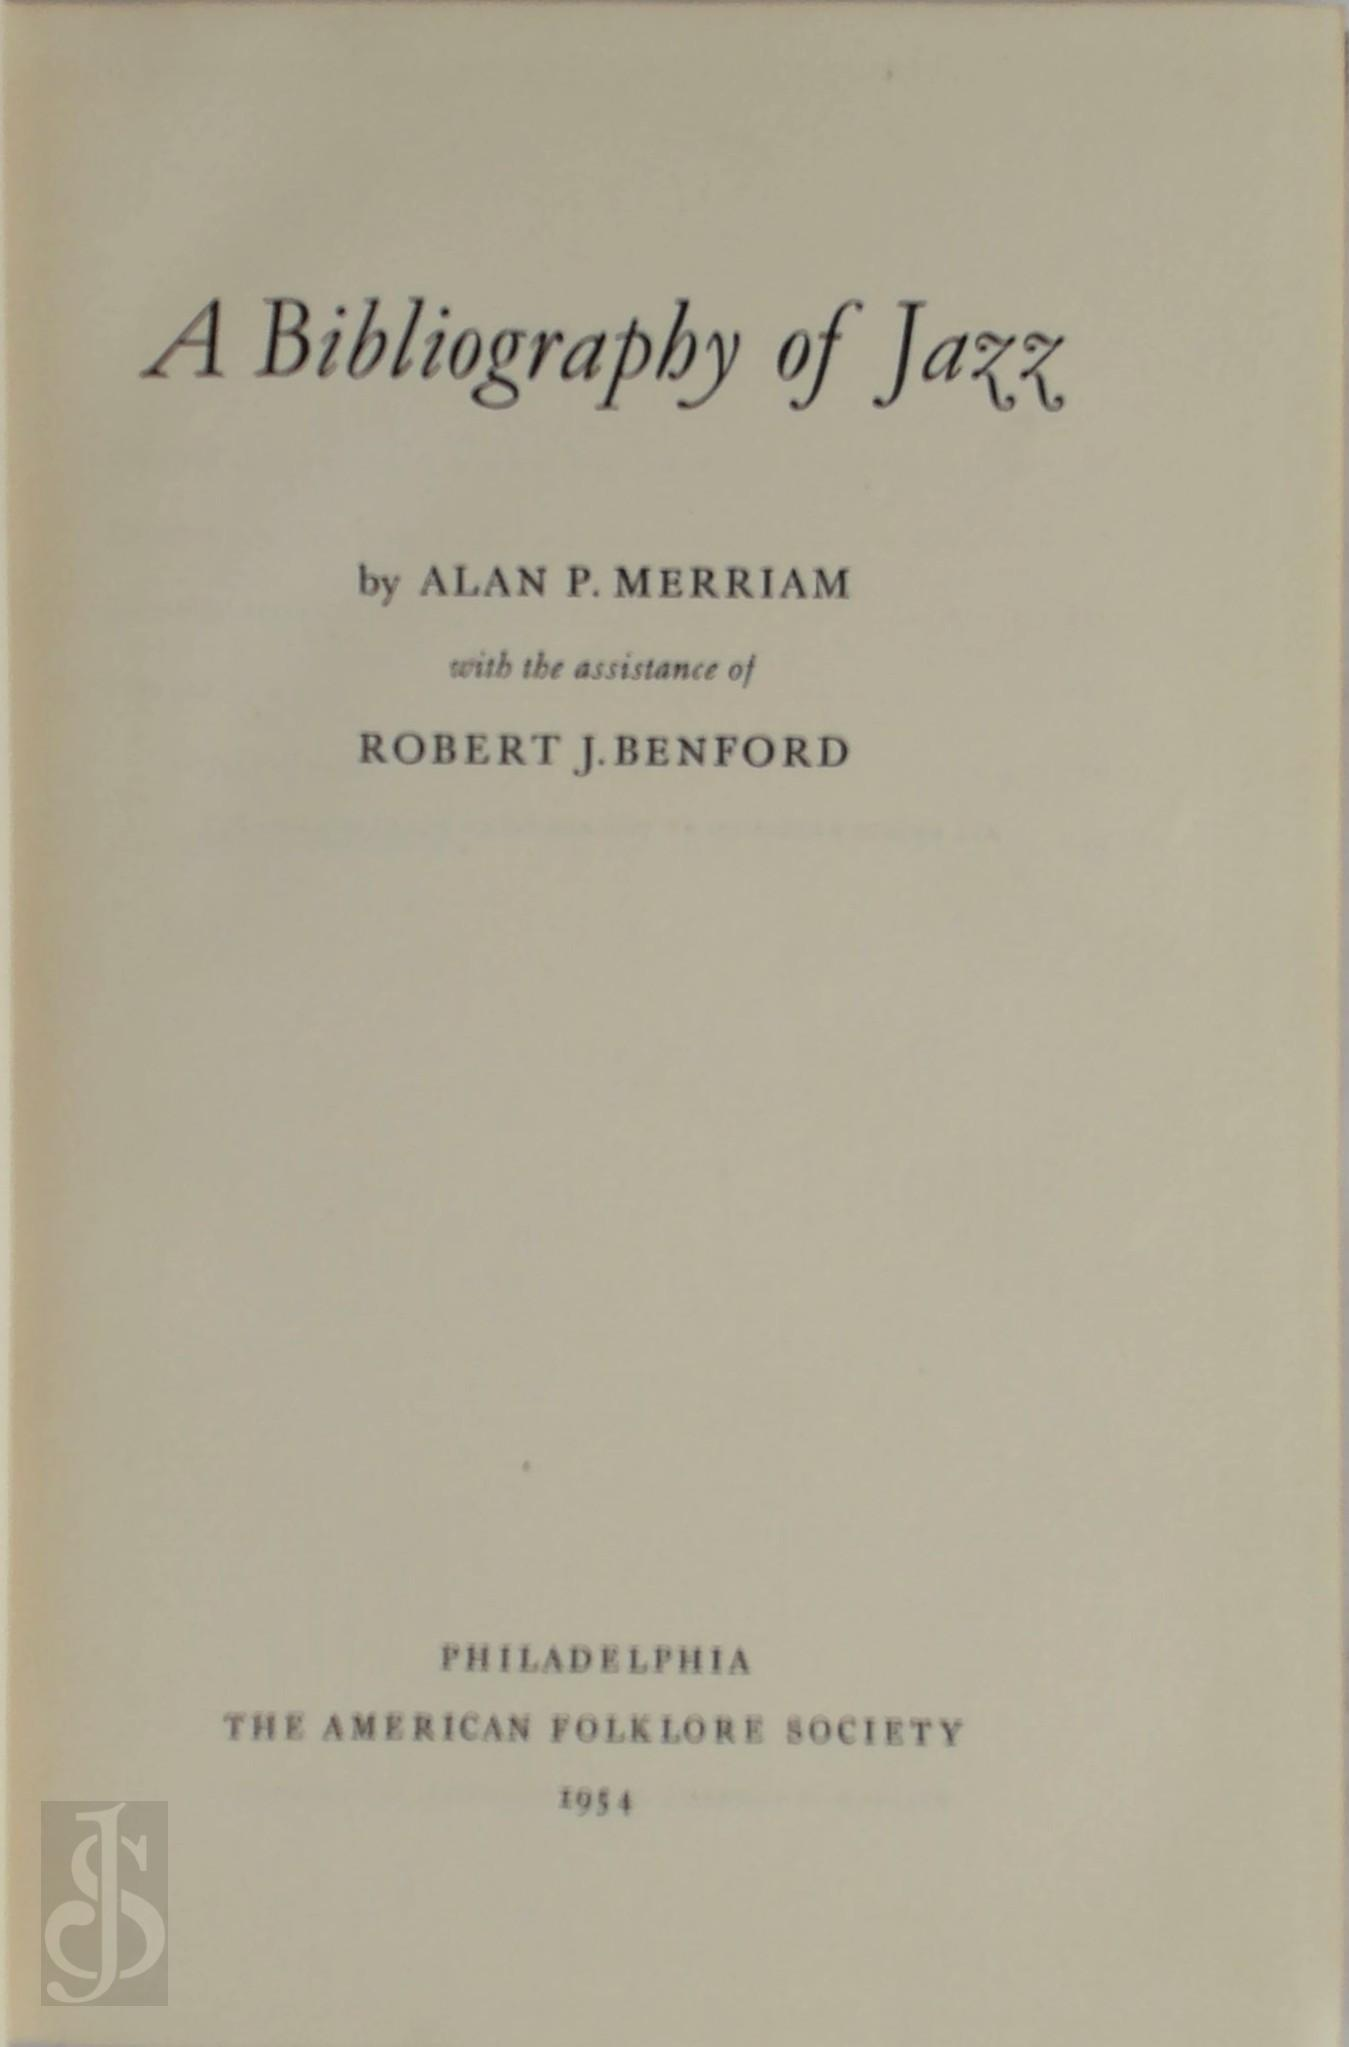 A Bibliography of Jazz